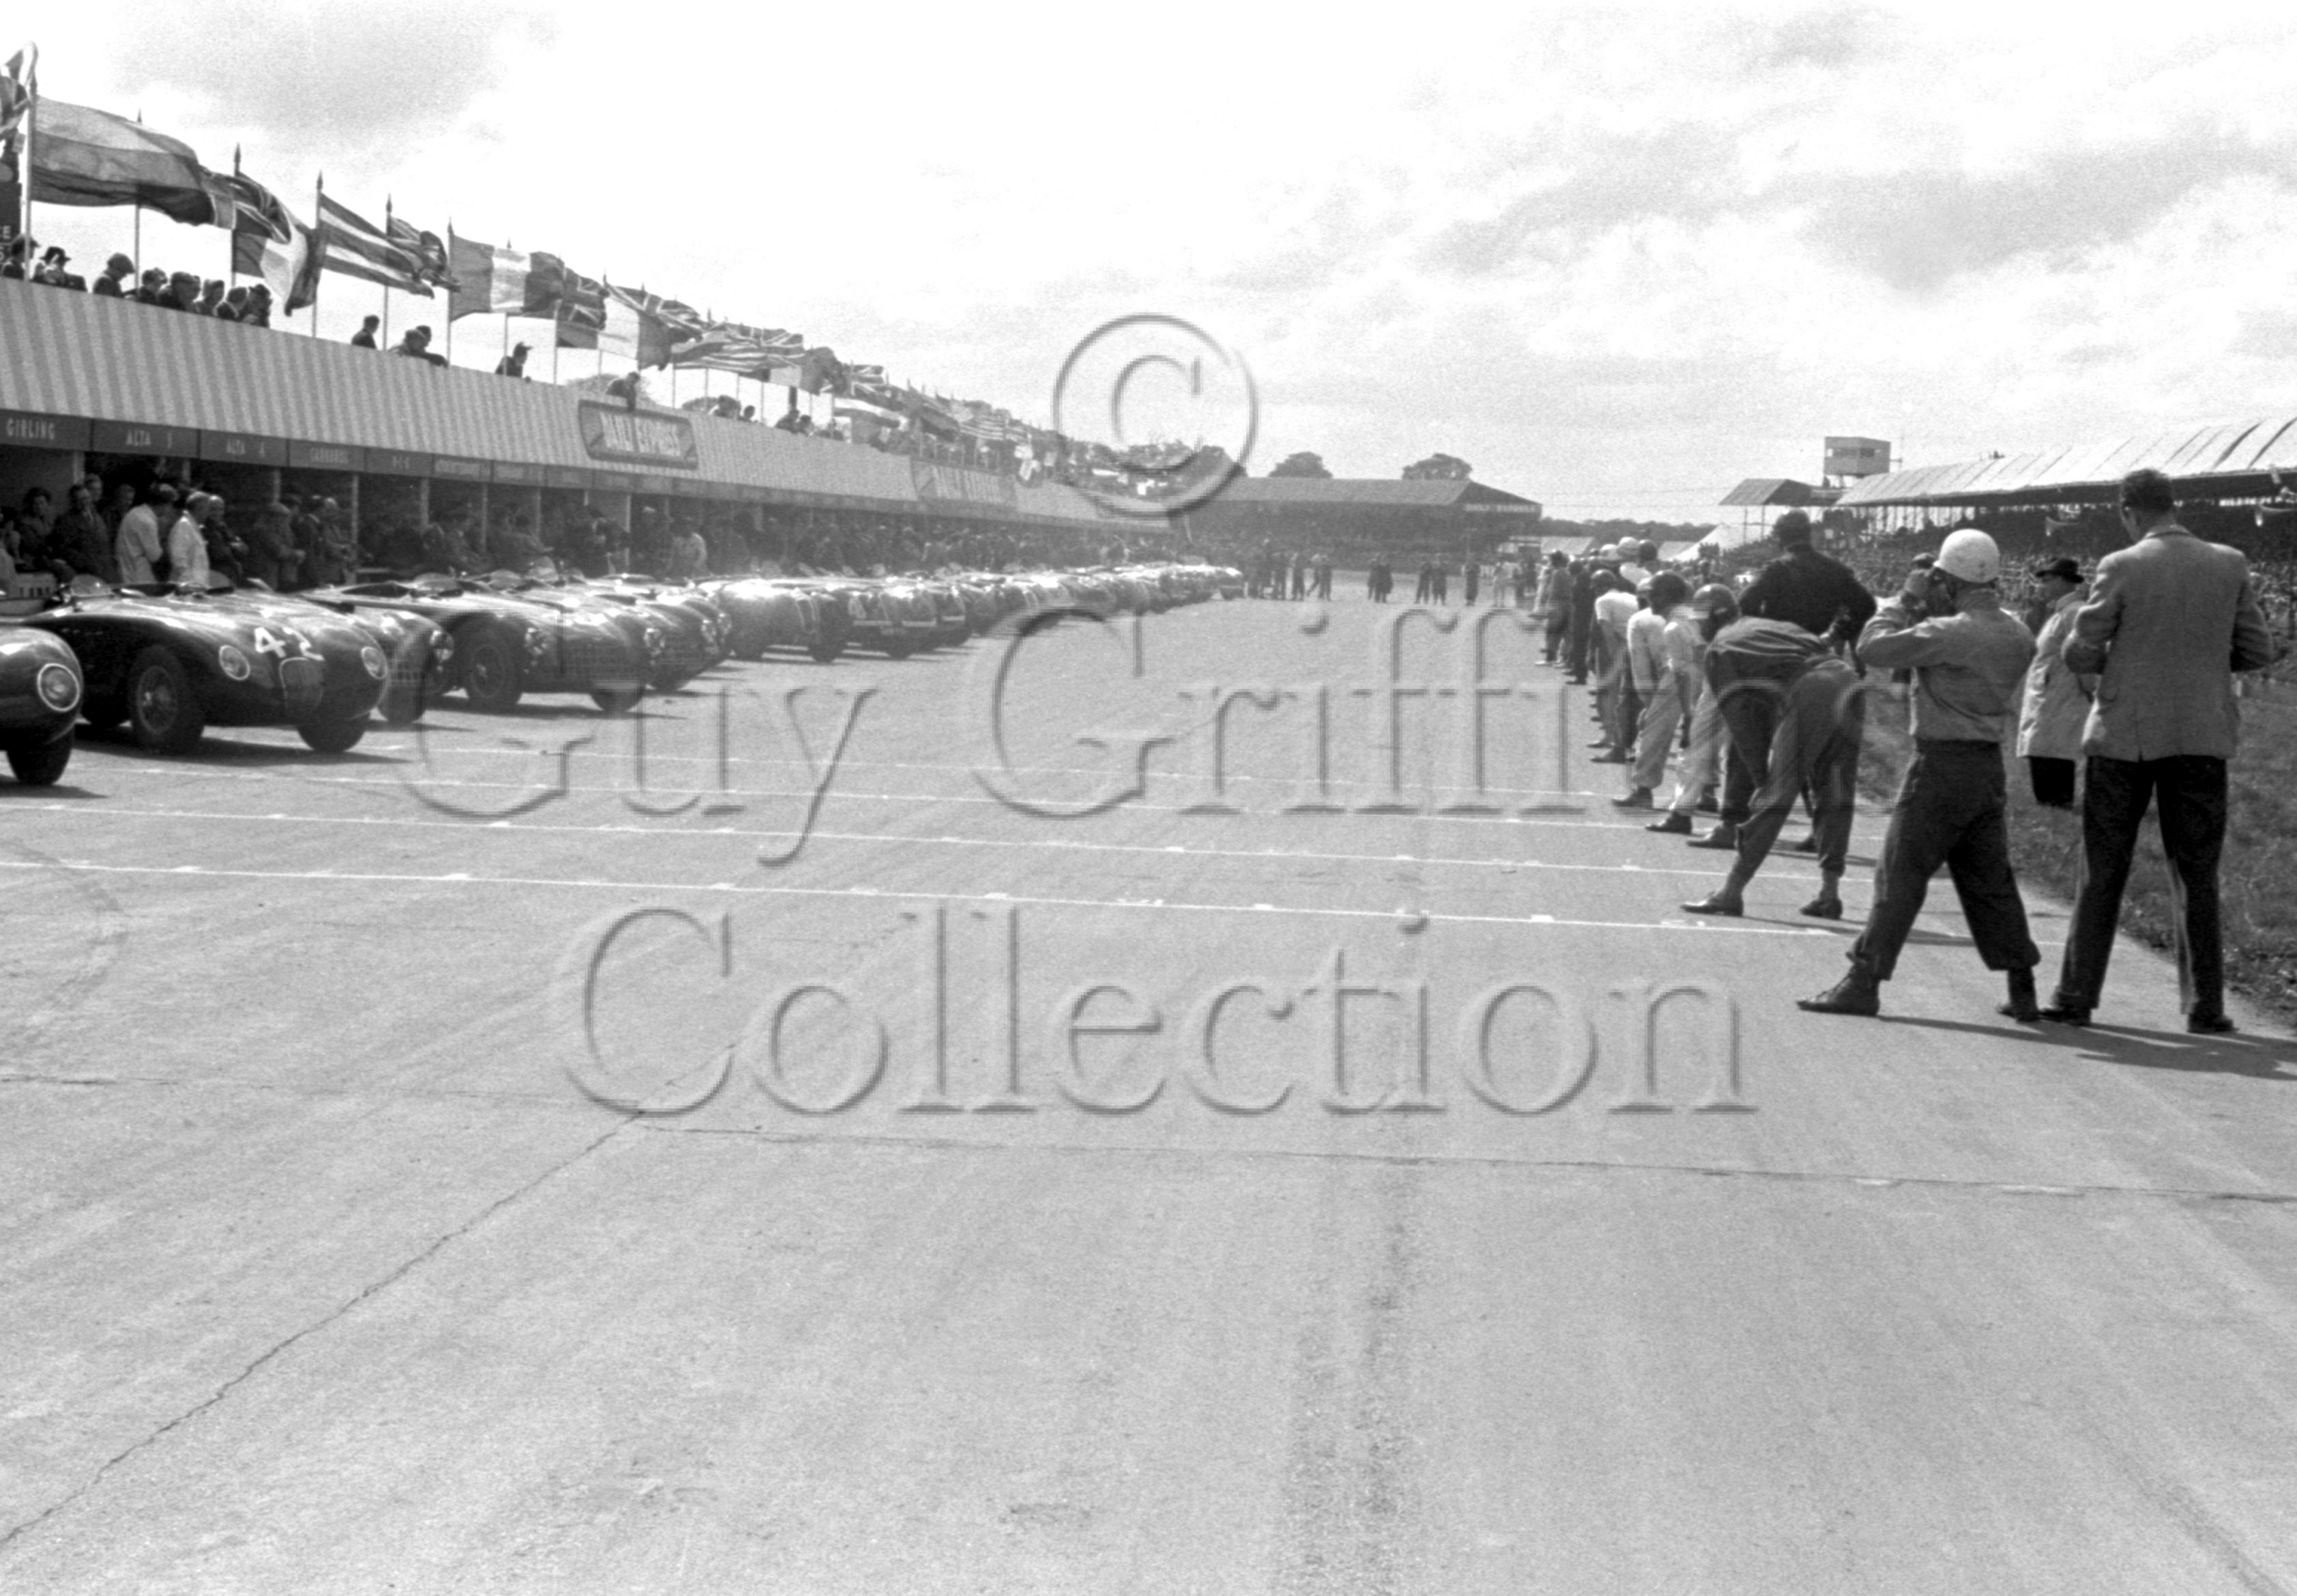 53-963–Silverstone–10-05-1952.jpg - The Guy Griffiths Collection